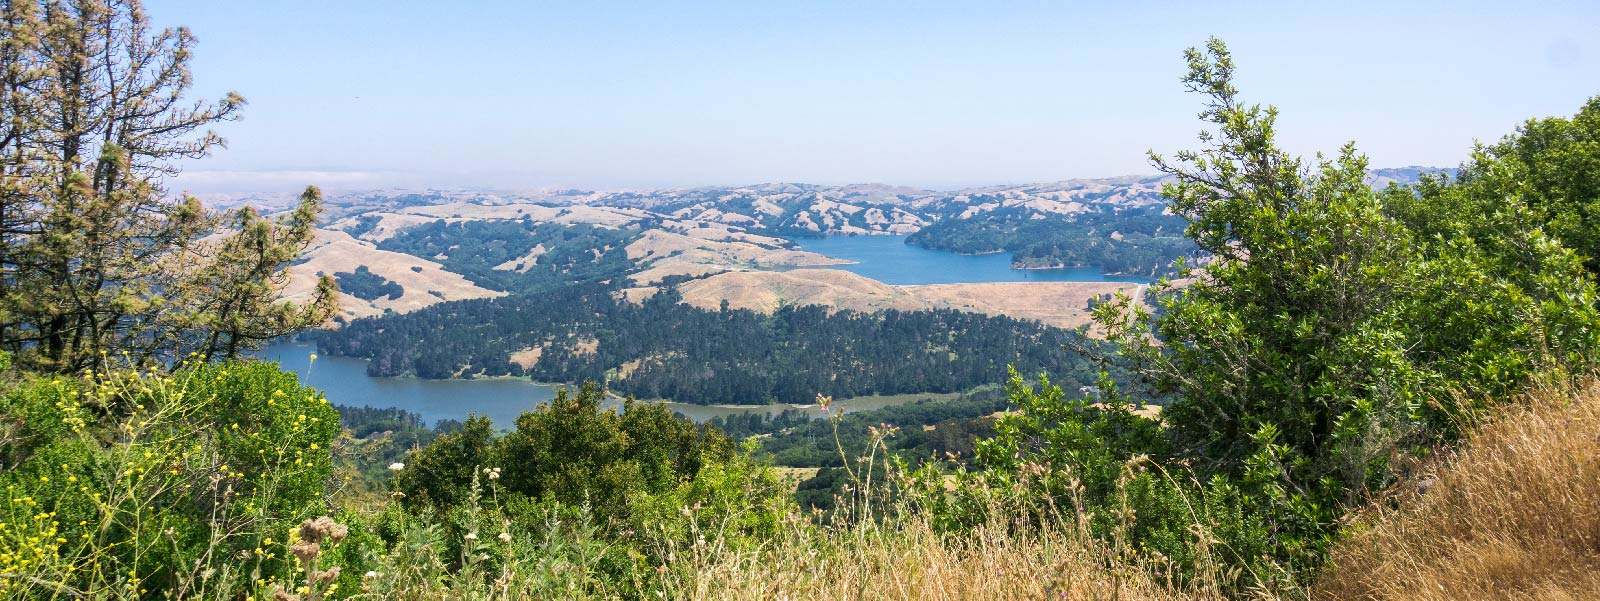 San Pablo and Briones reservoirs surrounded by golden hills